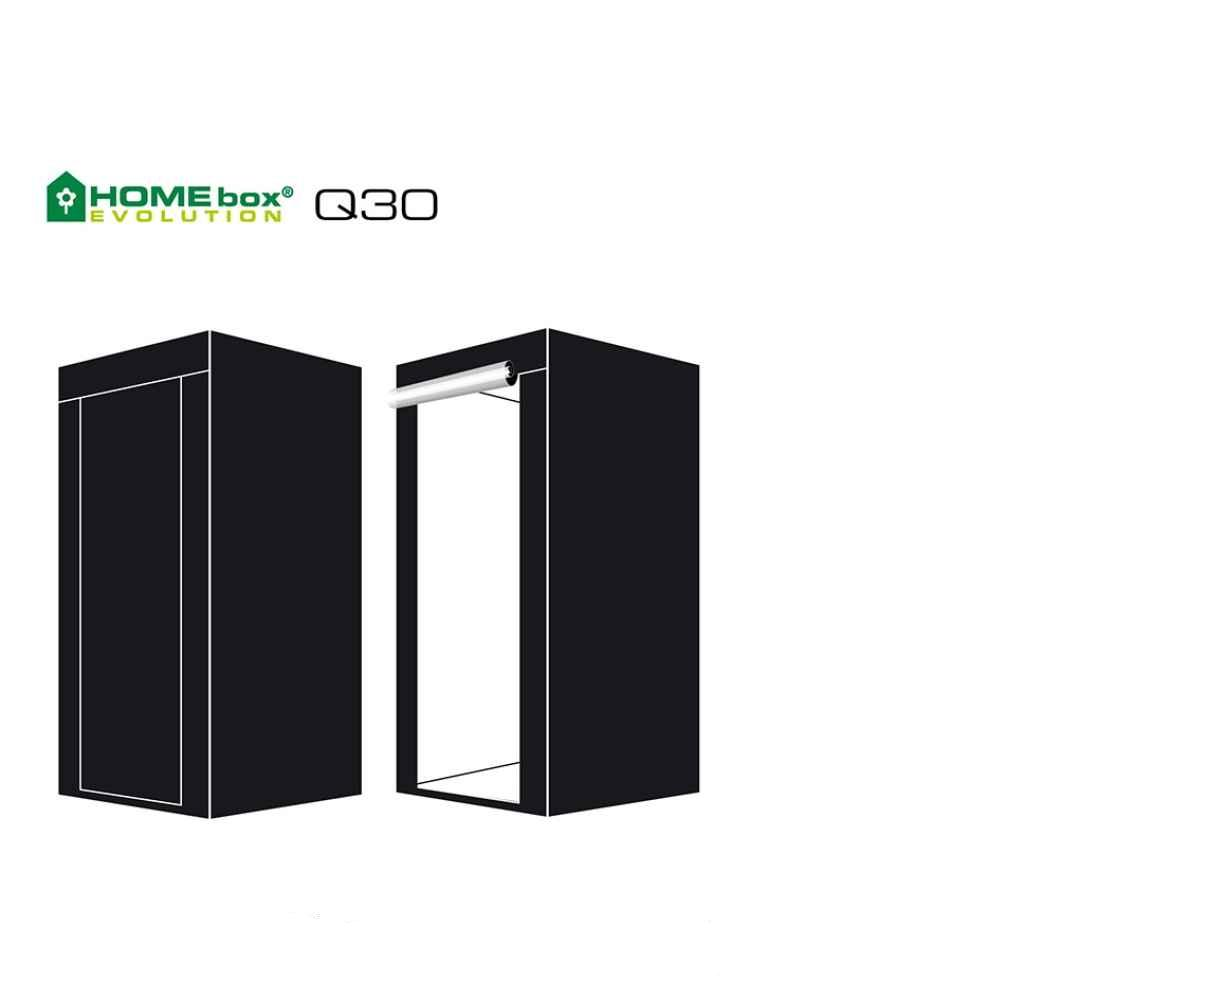 Homebox Evoluion Q30 30x30x60cm